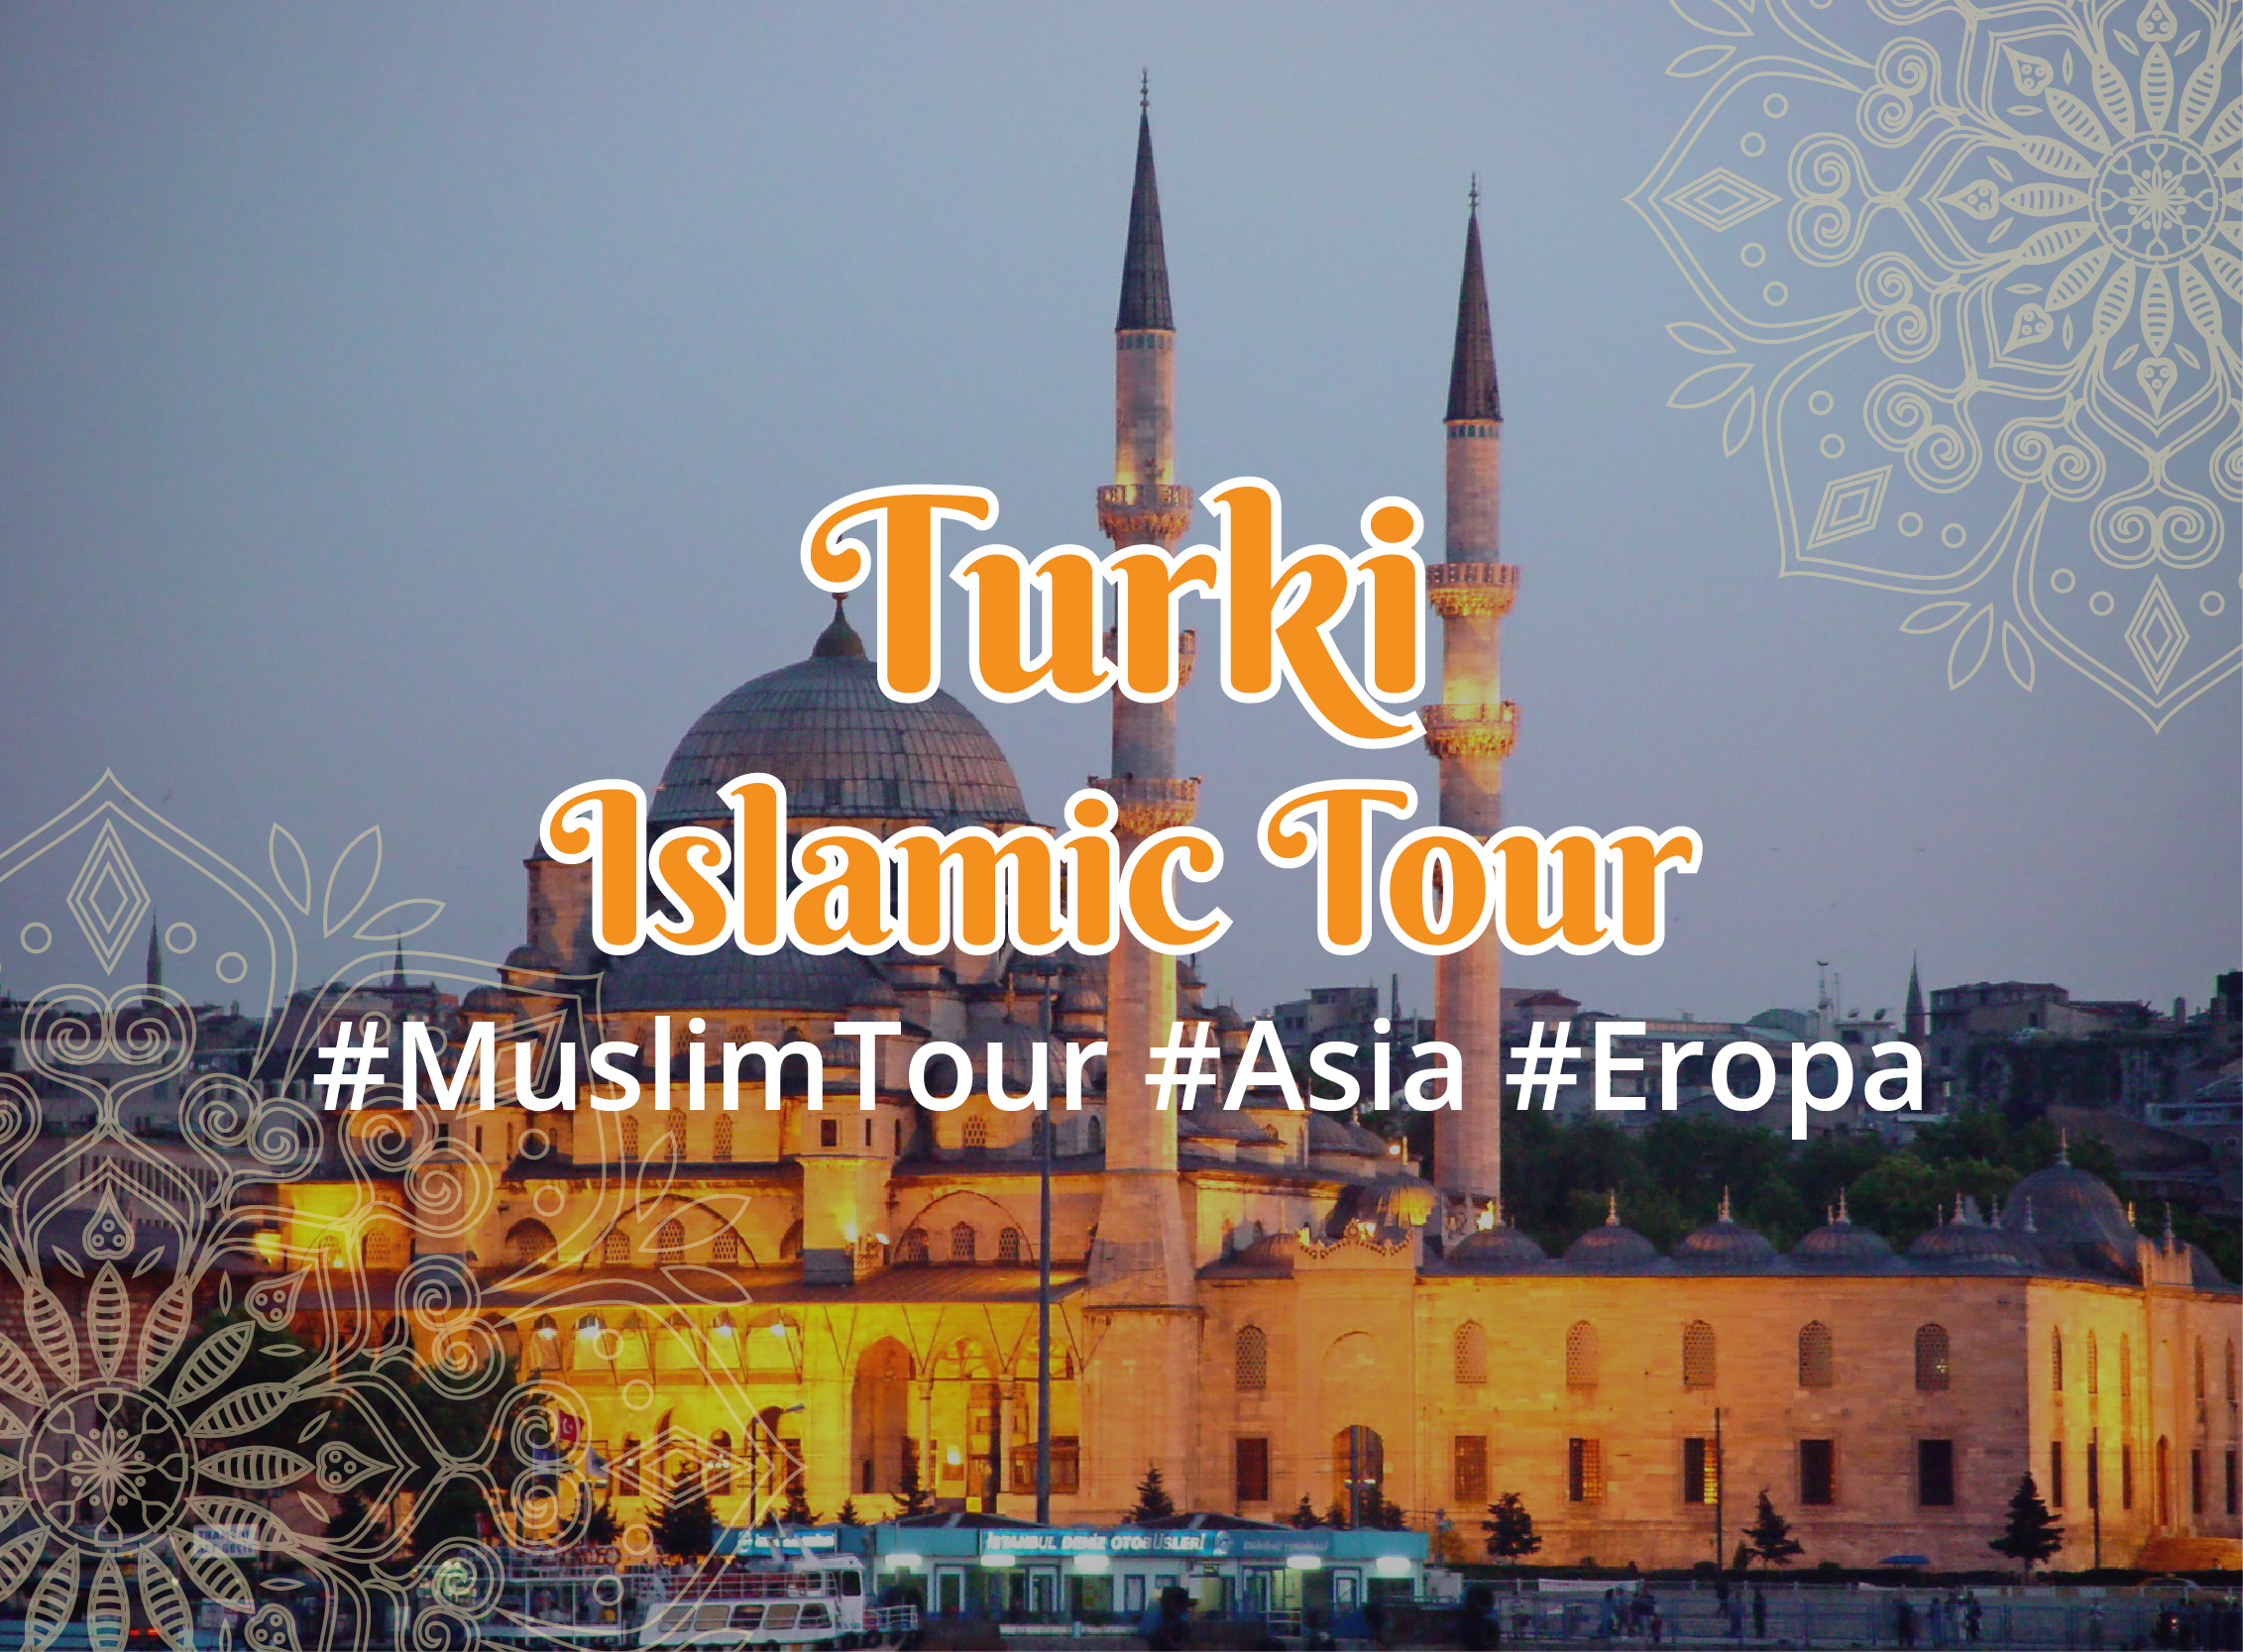 Turki Islamic tour (Okt-8D7N)